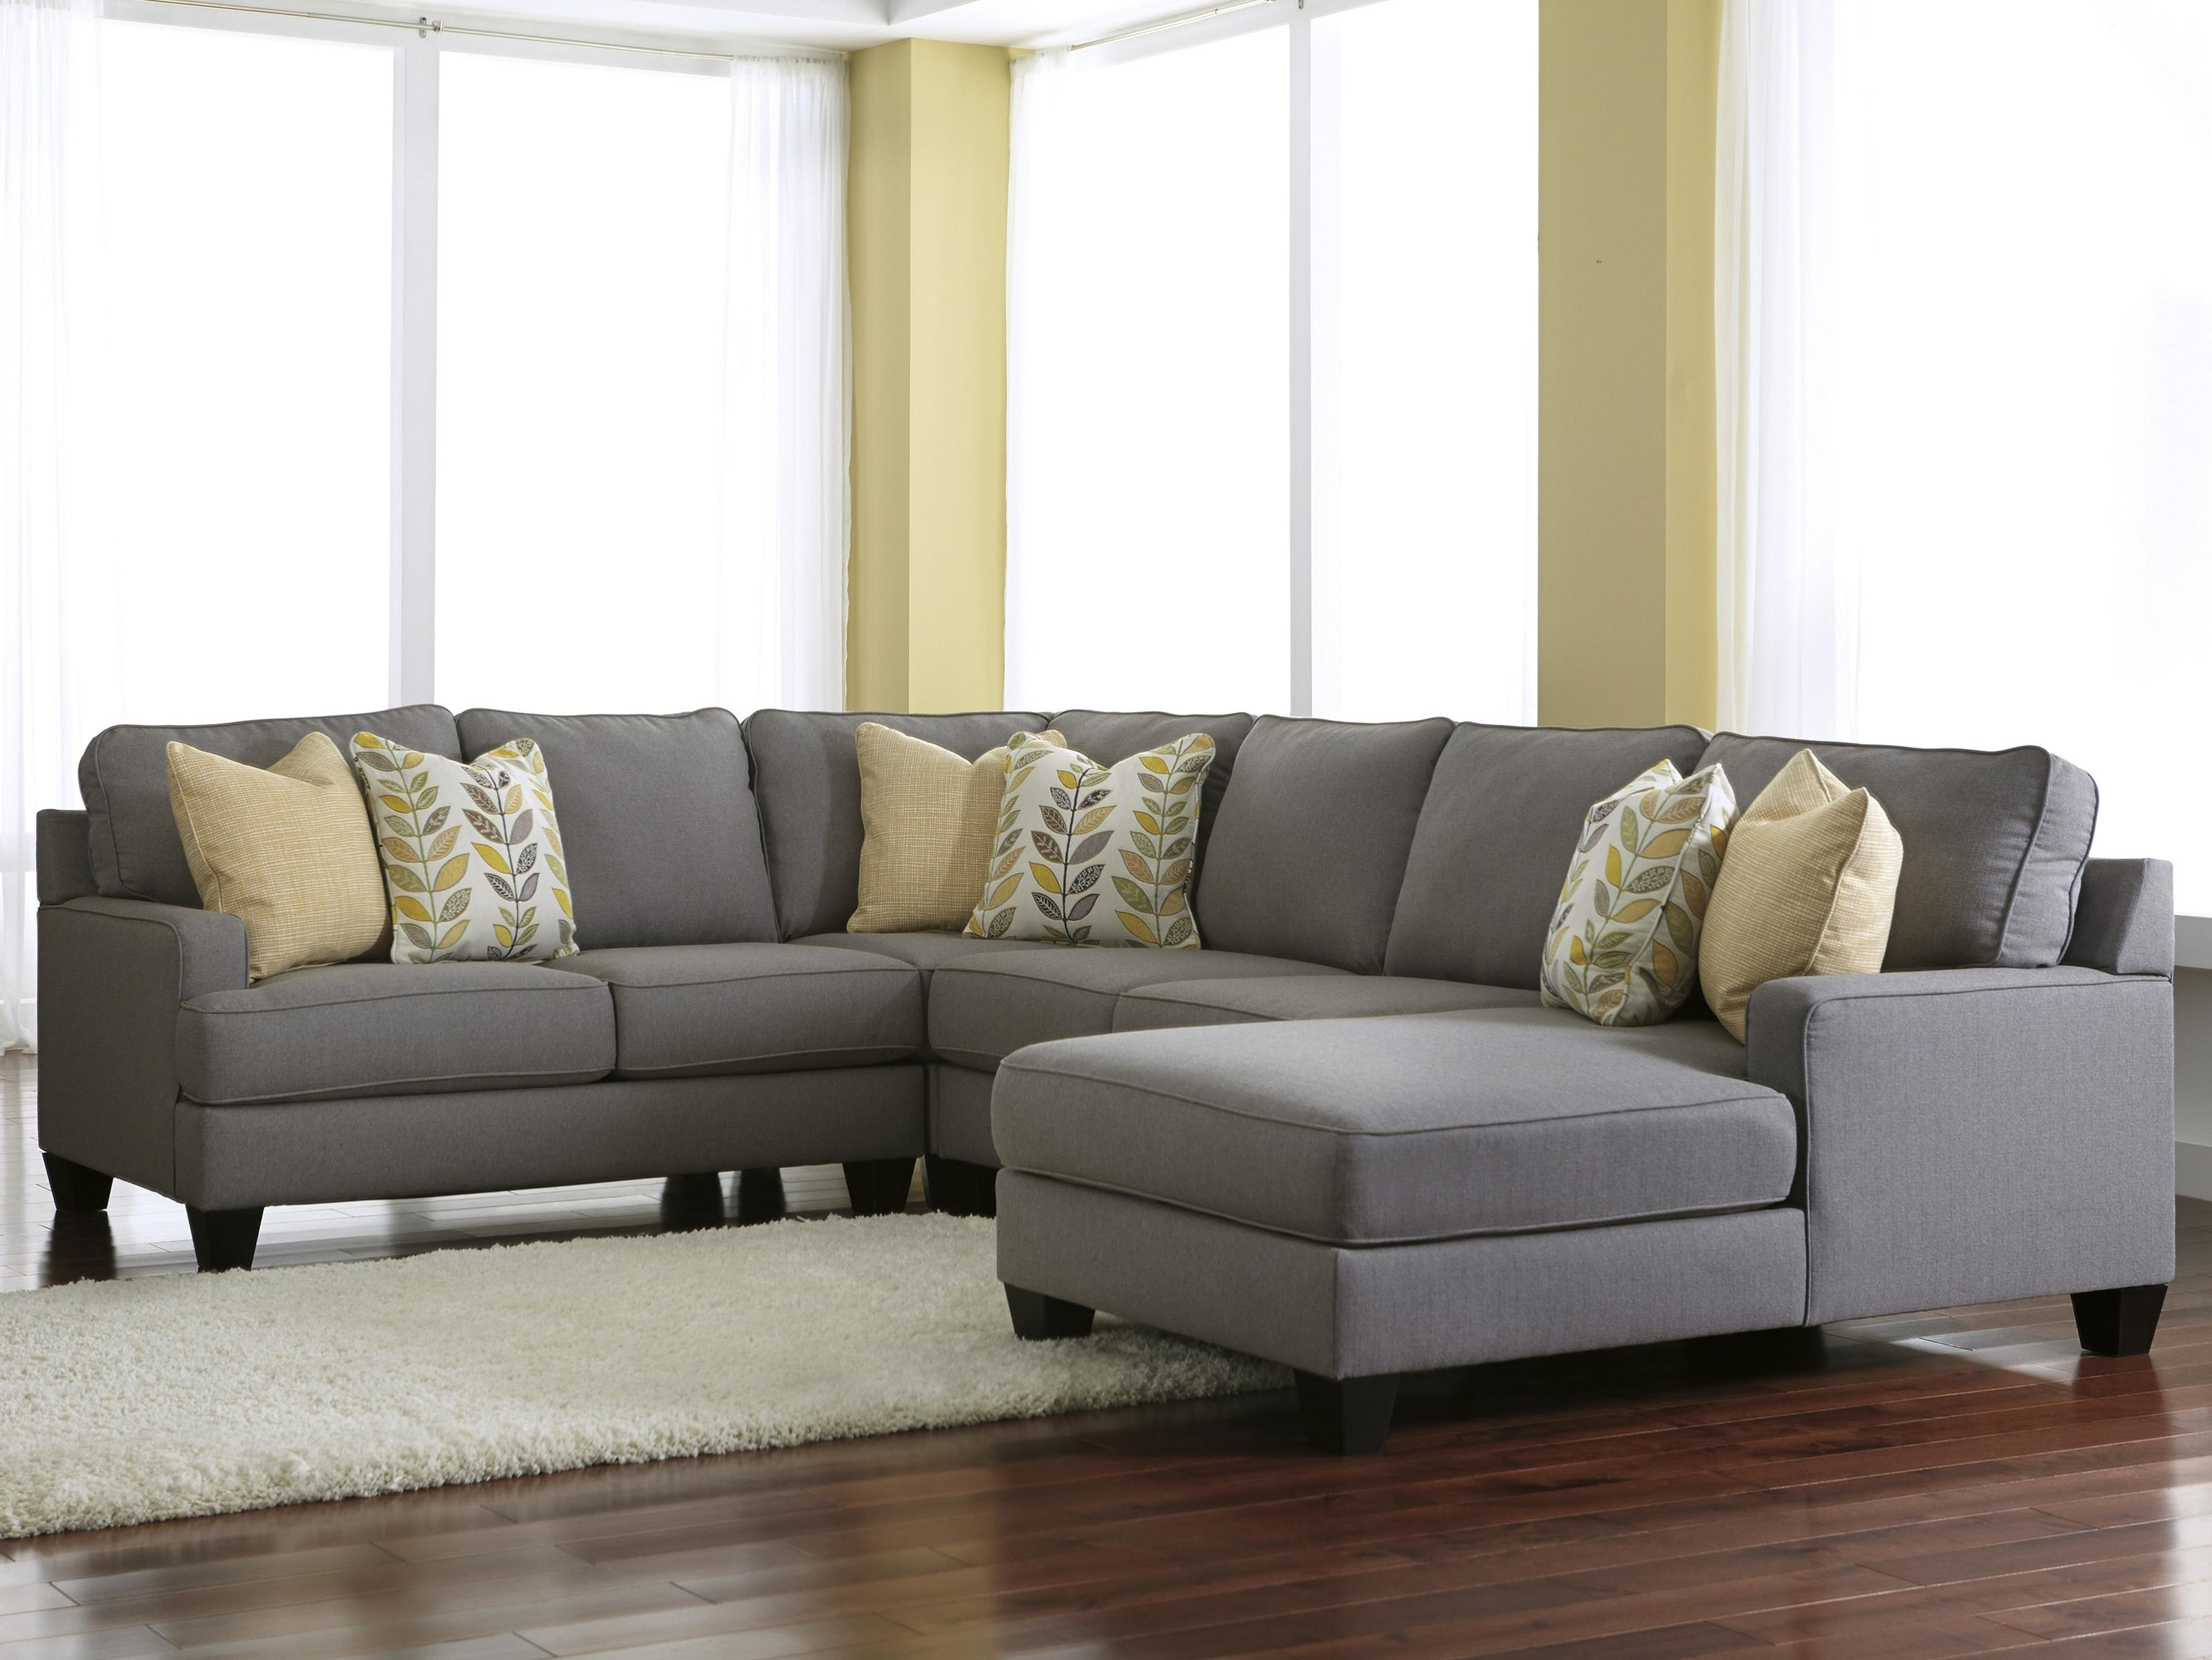 Popular Modern 4 Piece Sectional Sofa With Left Chaise & Reversible Seat Inside Gallery Furniture Sectional Sofas (View 12 of 20)